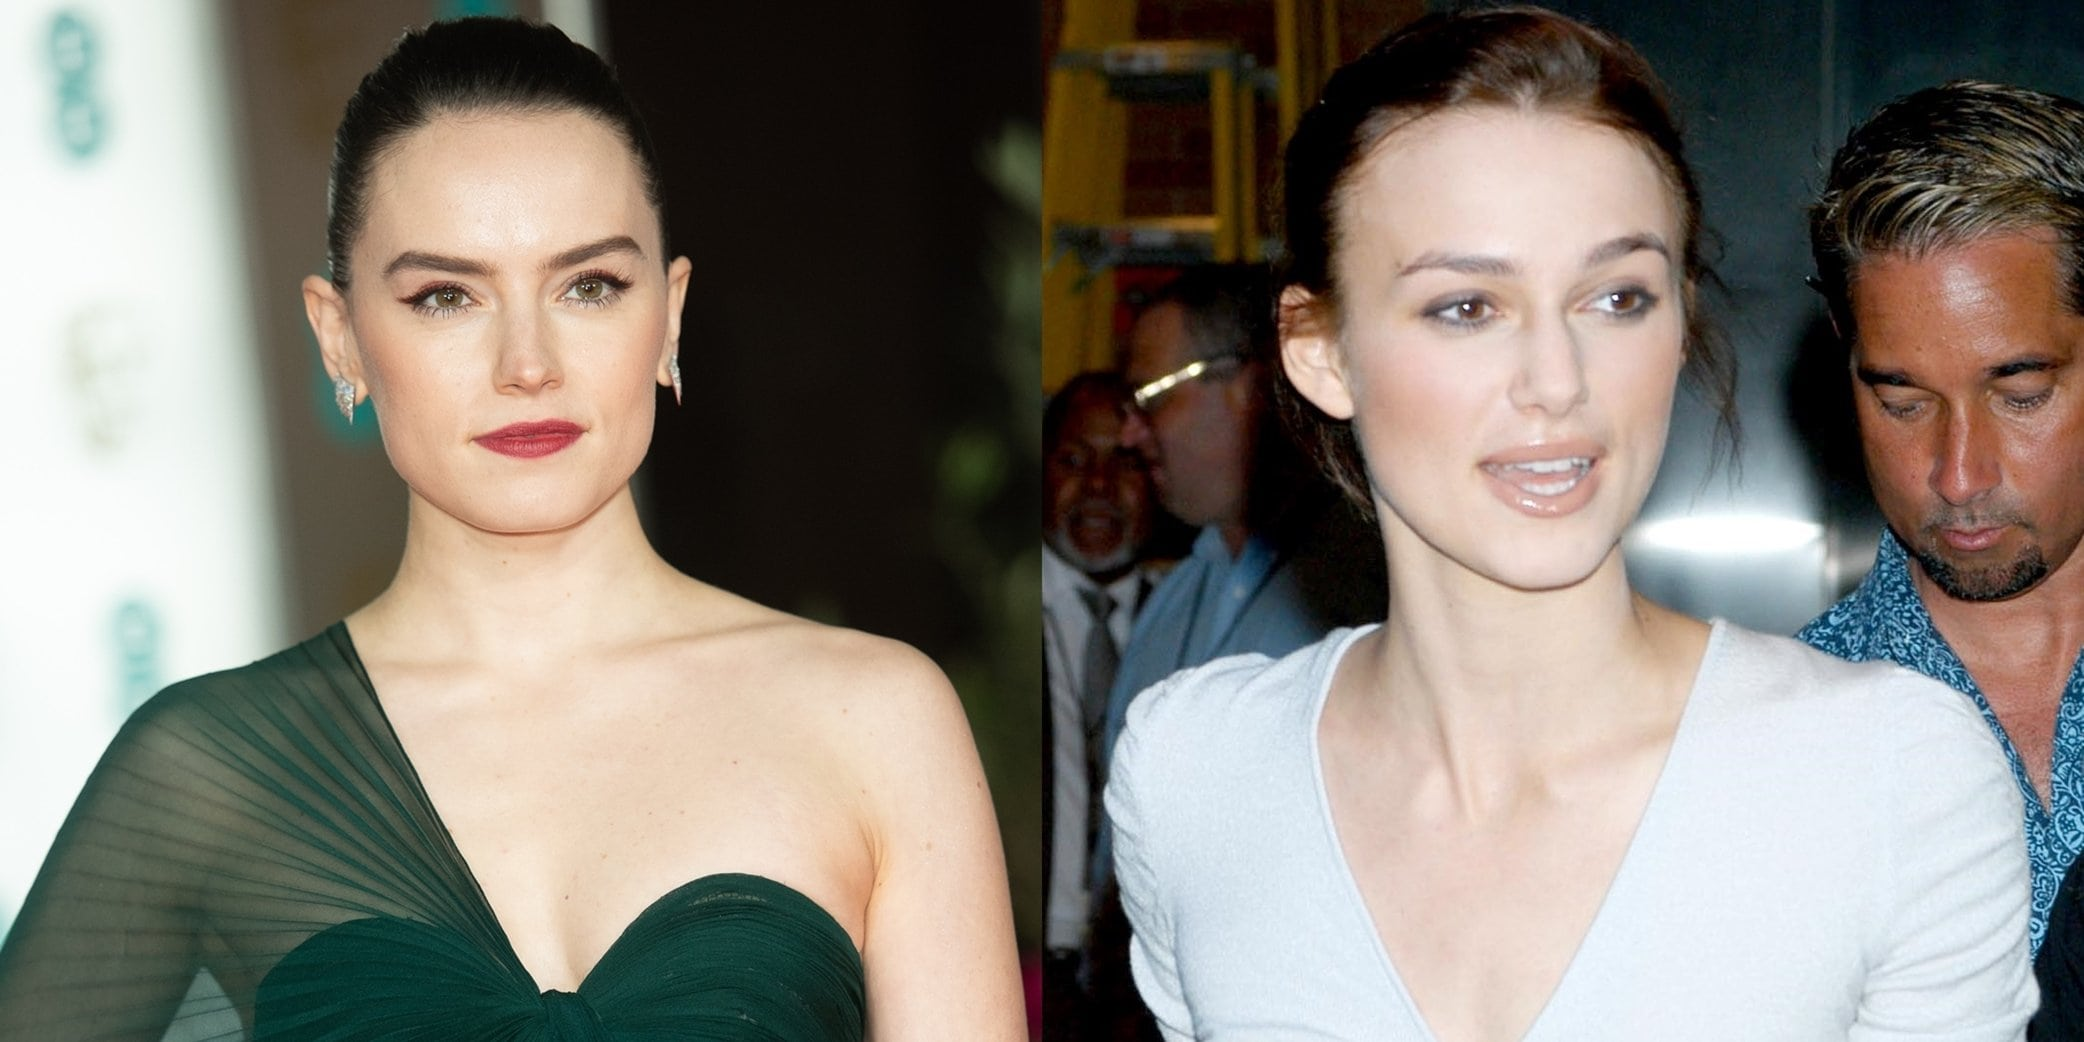 Daisy Ridley (L) does not want to be compared to lookalike actress Keira Knightley (R)